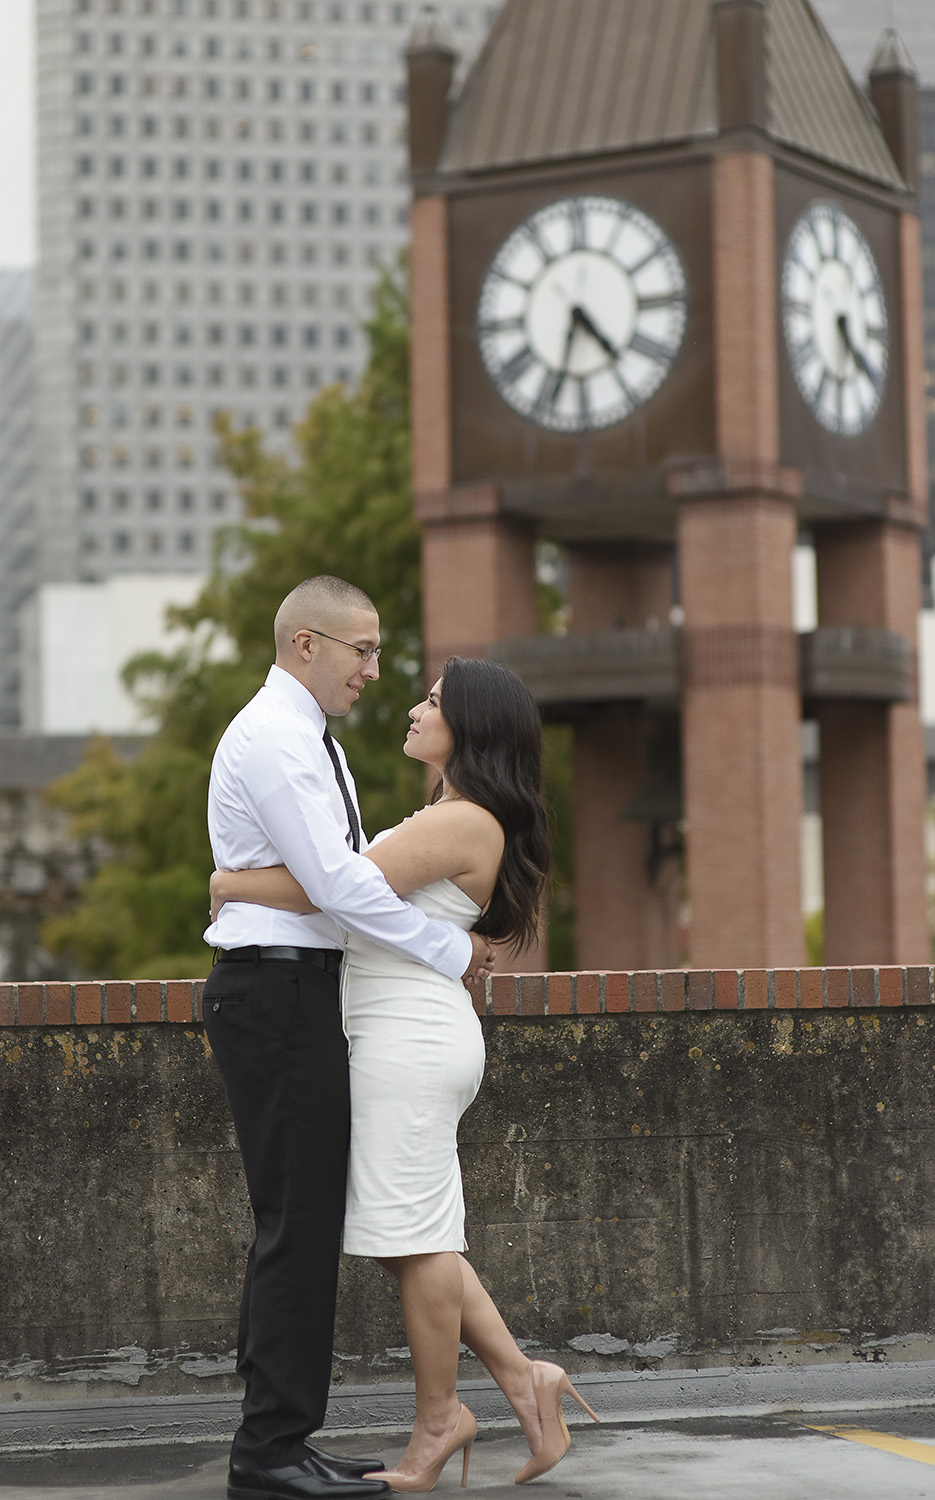 Marketsquare-engagement-romantic-downtown-lifestyle-modern-photographer-hotel-icon